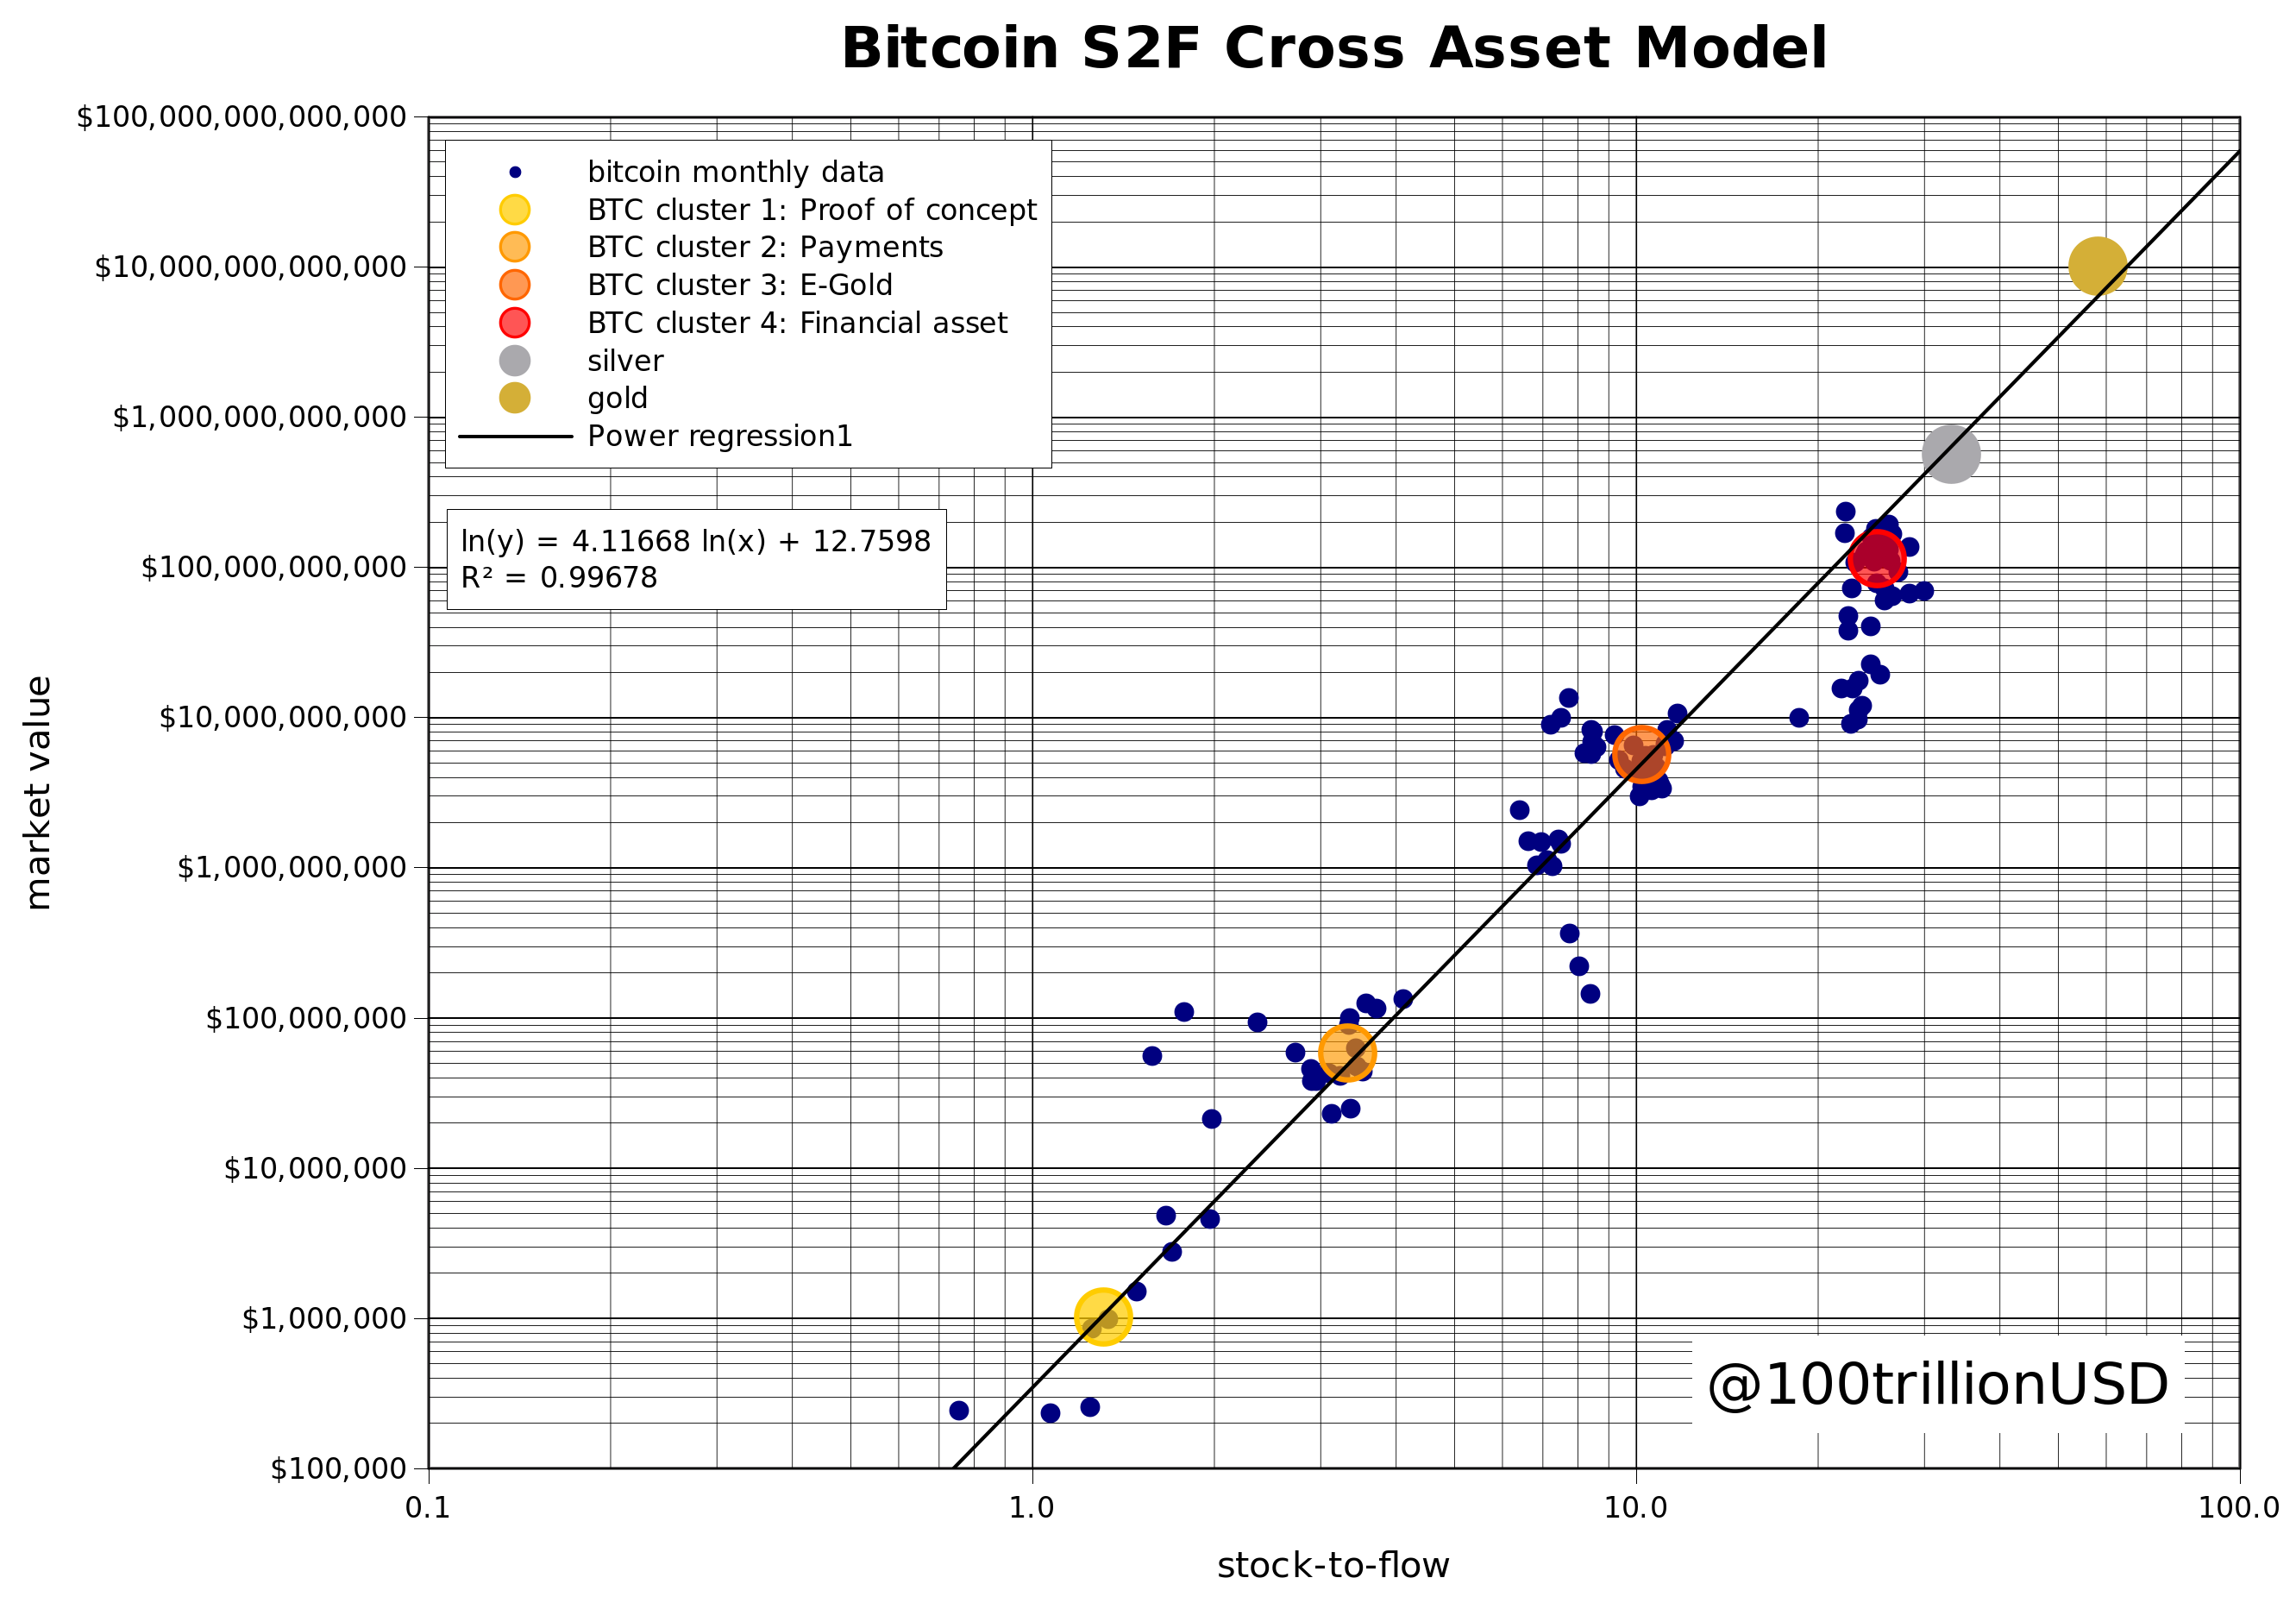 Image of a new iteration of the Stock to Flow Model from analyst PlanB. It predicts Bitcoin will reach $288,000 or so in the next era.